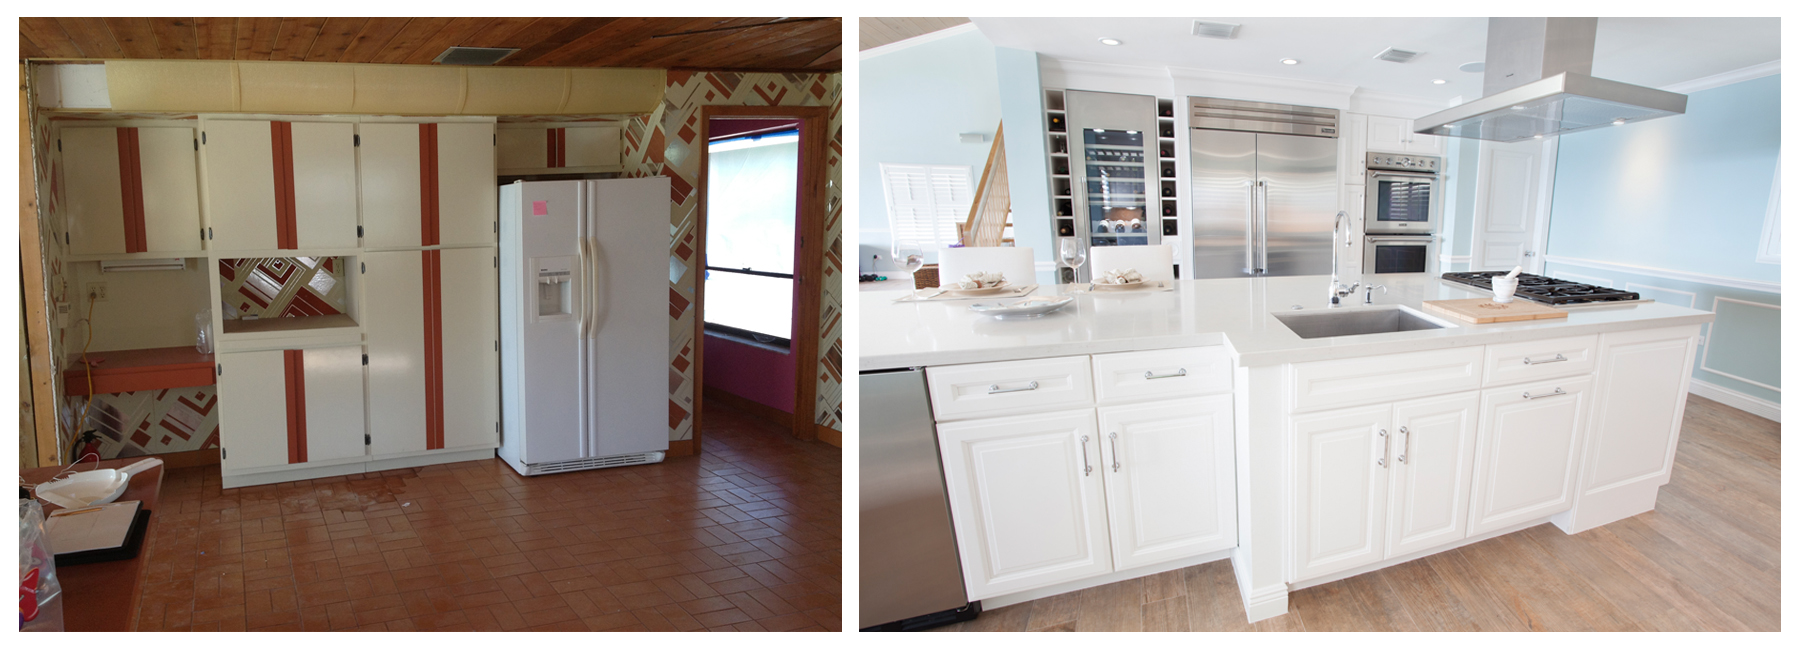 Before & After - Martin Kitchen